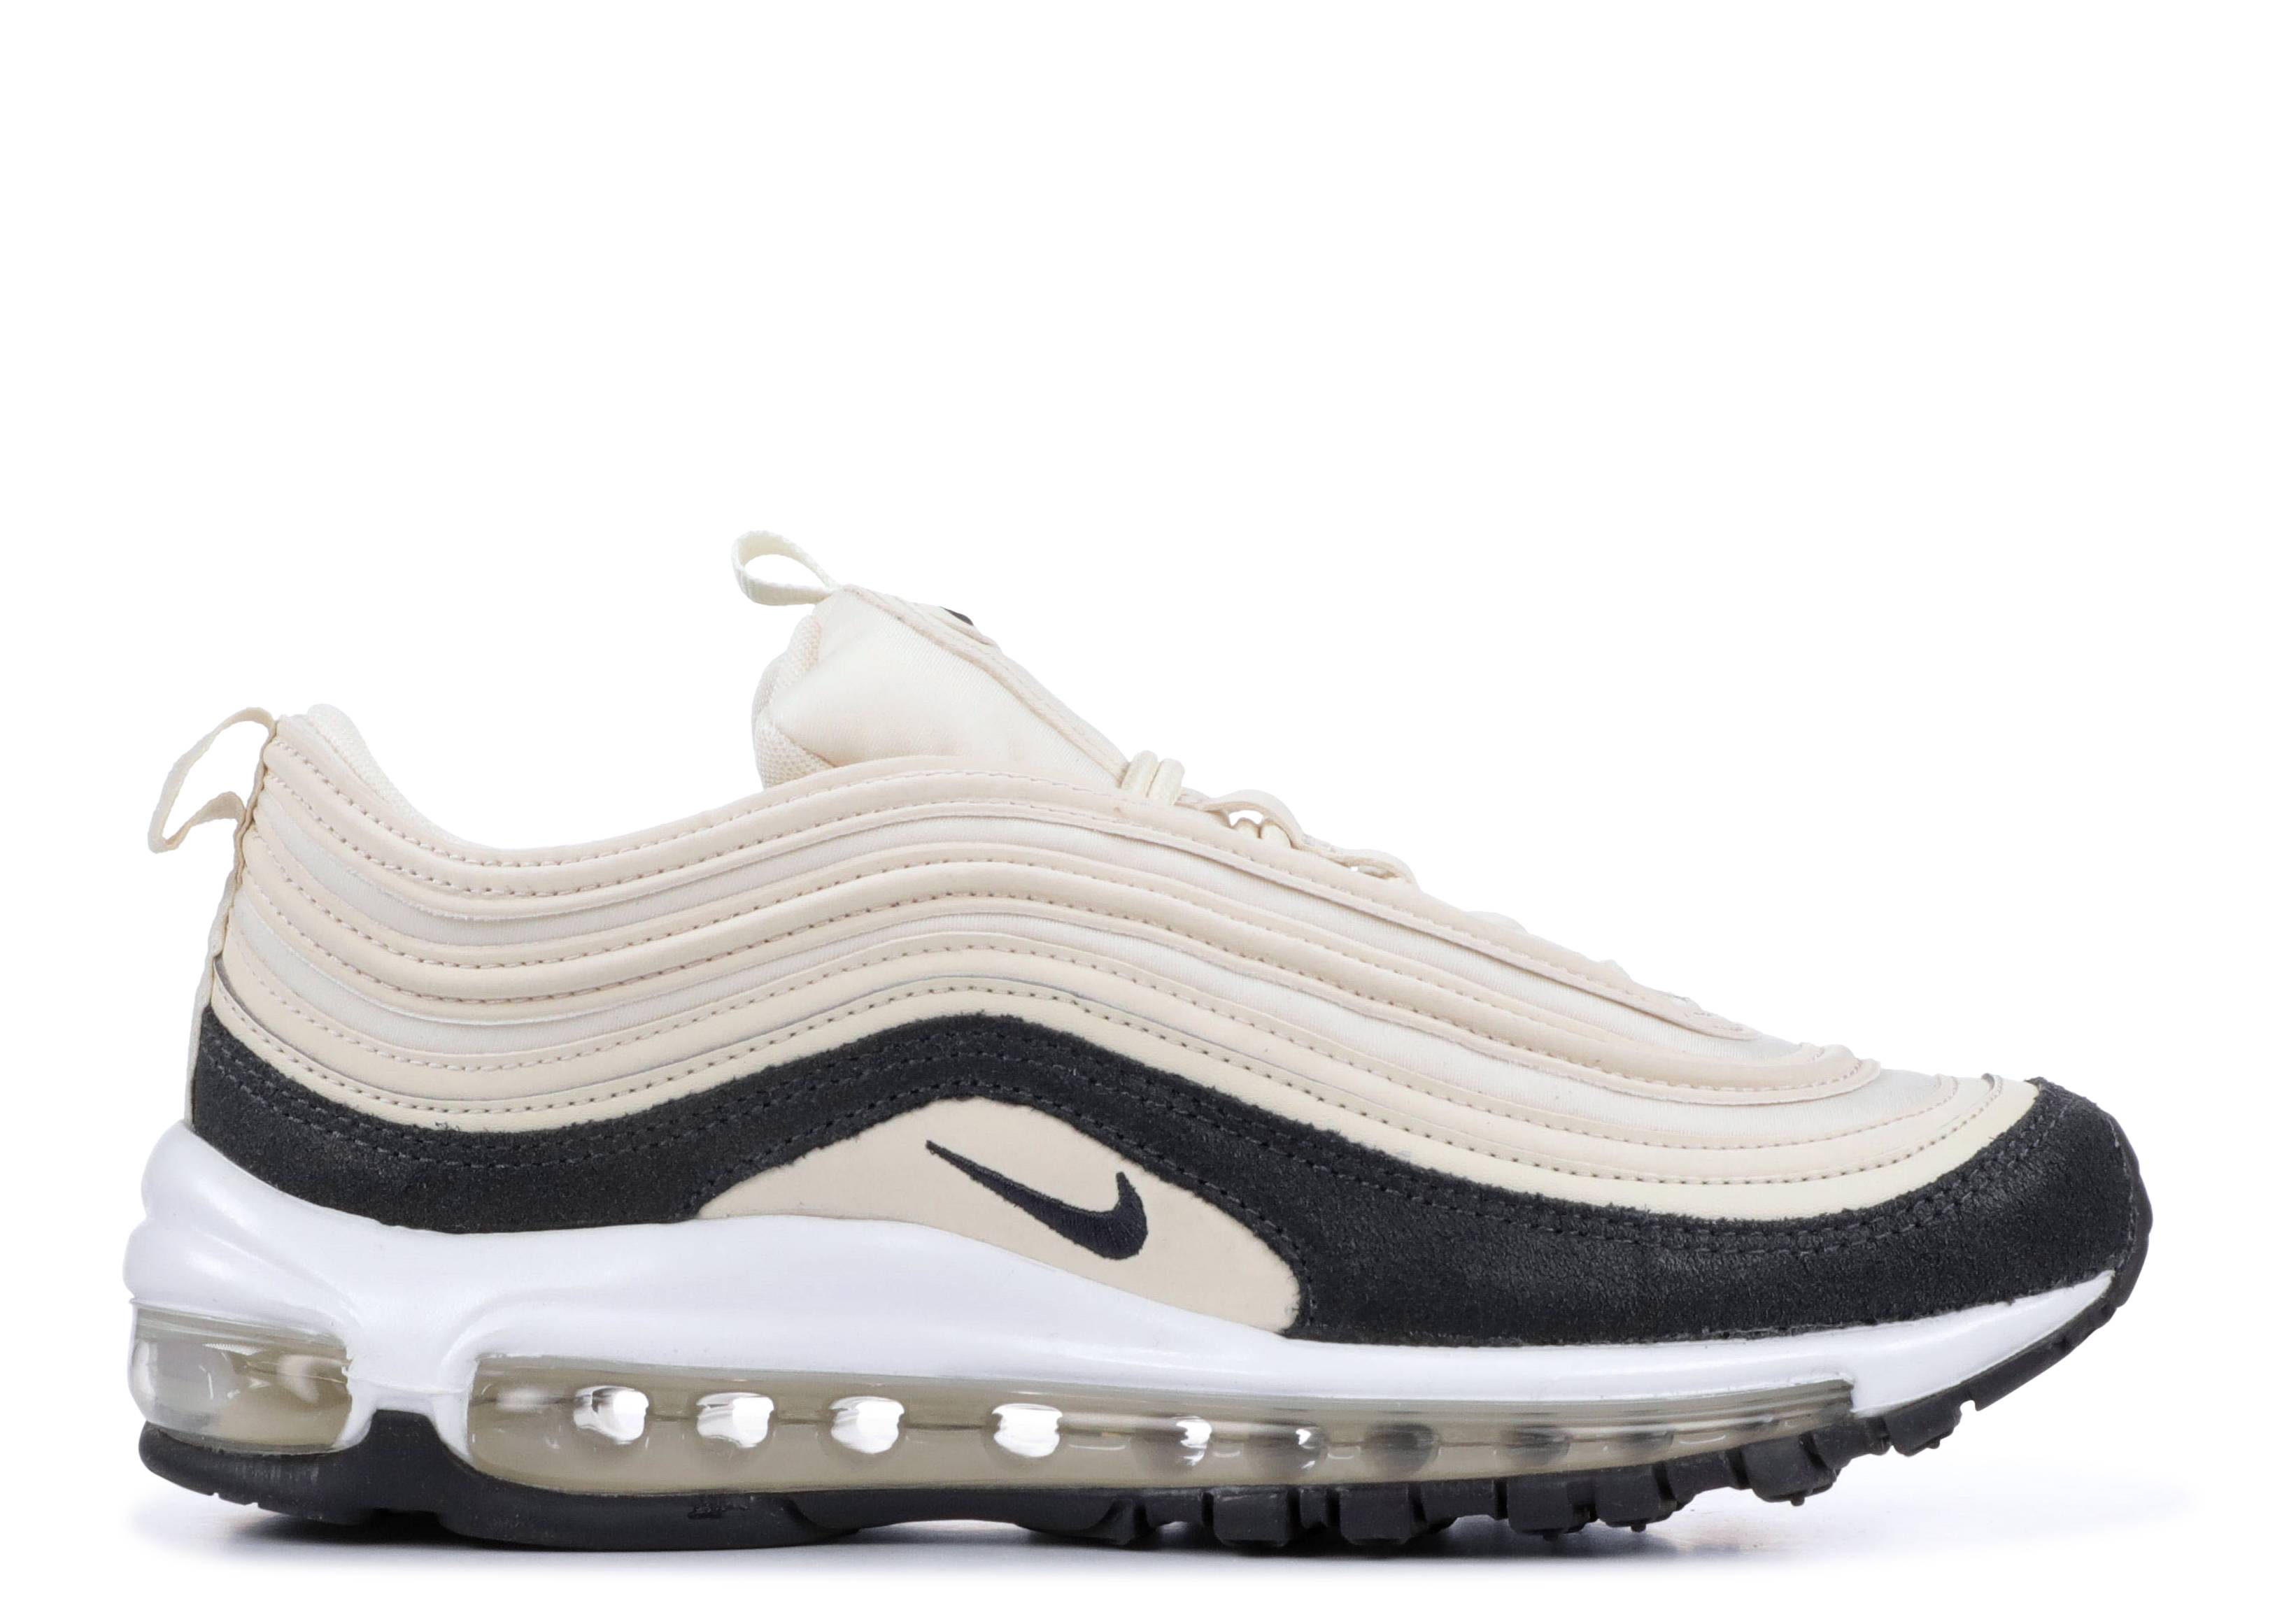 49fee7df4e Wmns Air Max 97 Premium